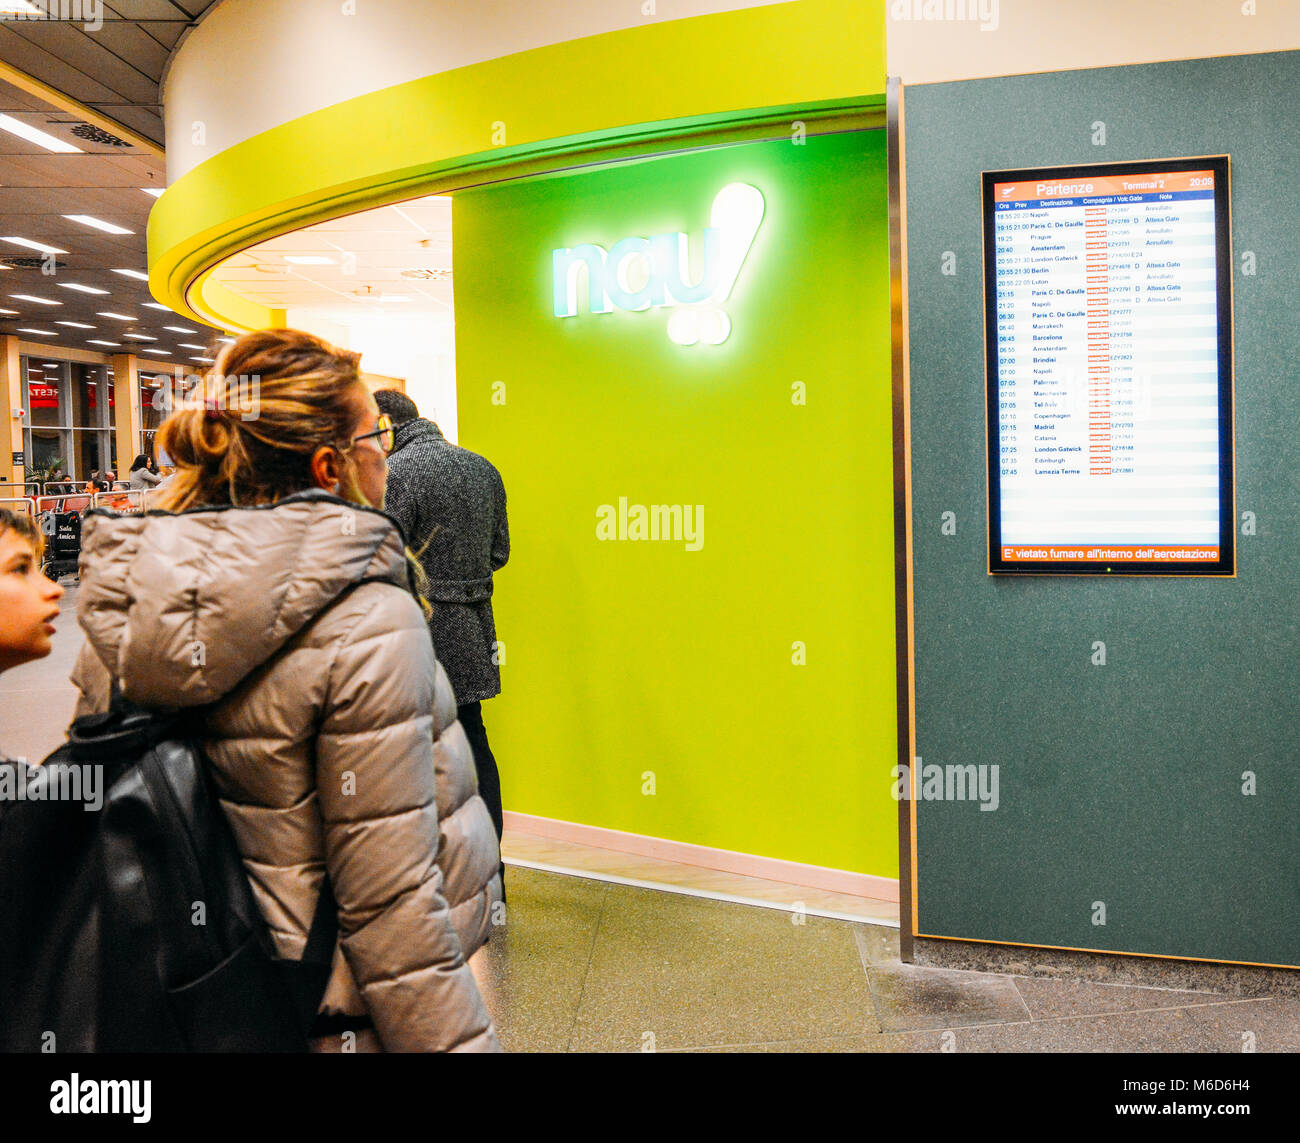 Milan, Italy. 2nd March, 2018. Milan Malpensa Airport - Mar 2nd, 2018: Female passenger and young boy look at the - Stock Image